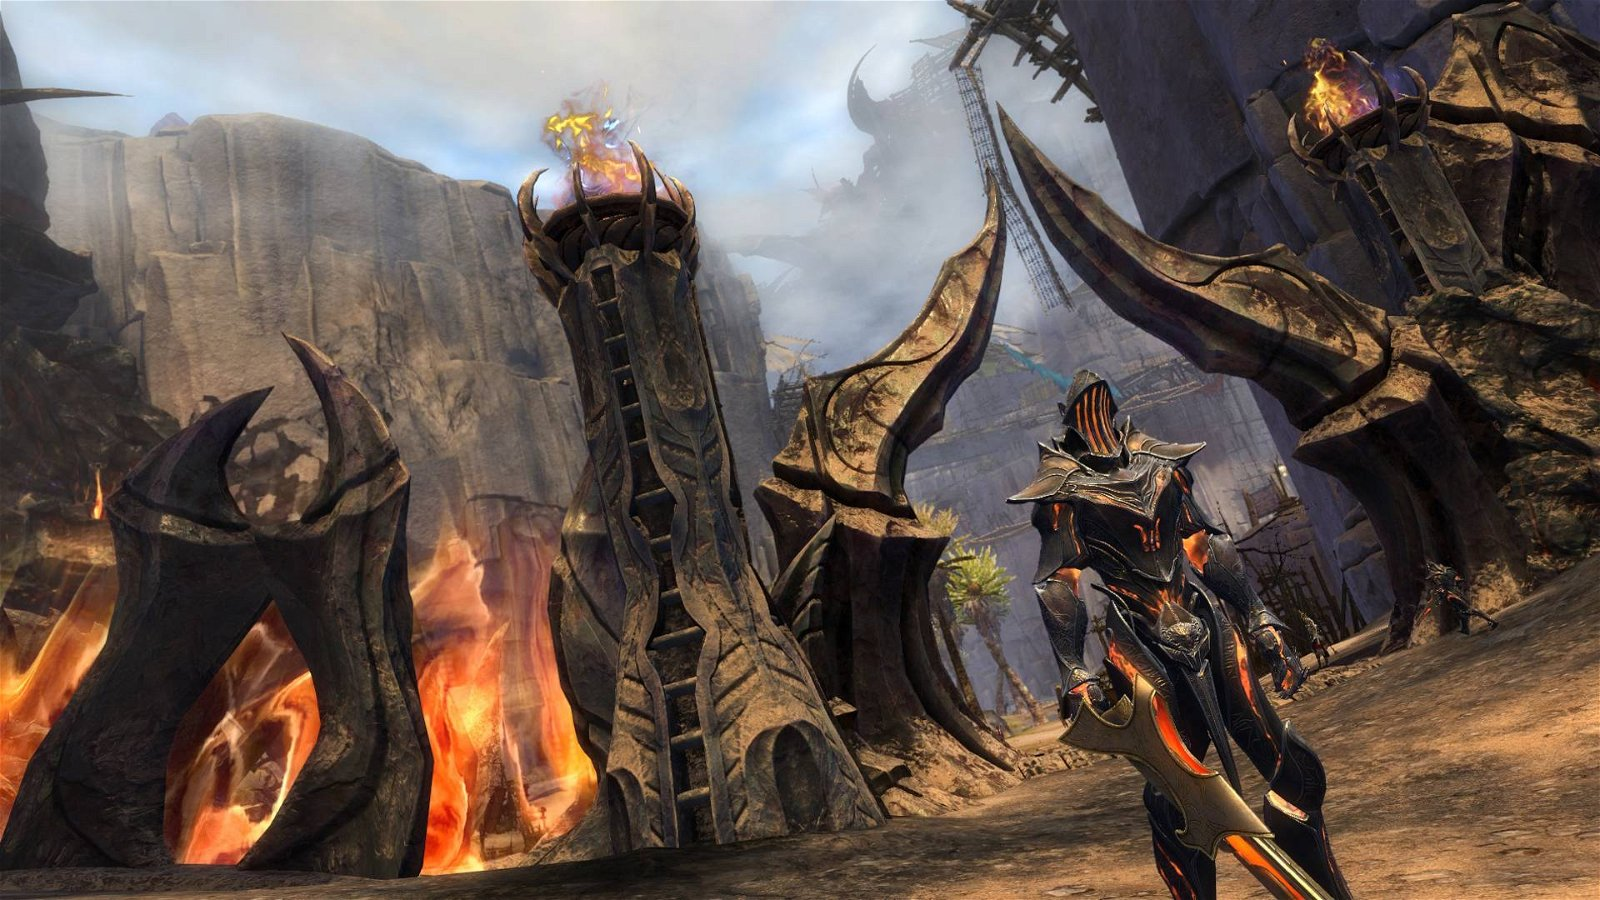 Guild Wars 2: Path Of Fire (Pc) Review – A Reminder Of Nightfall 2